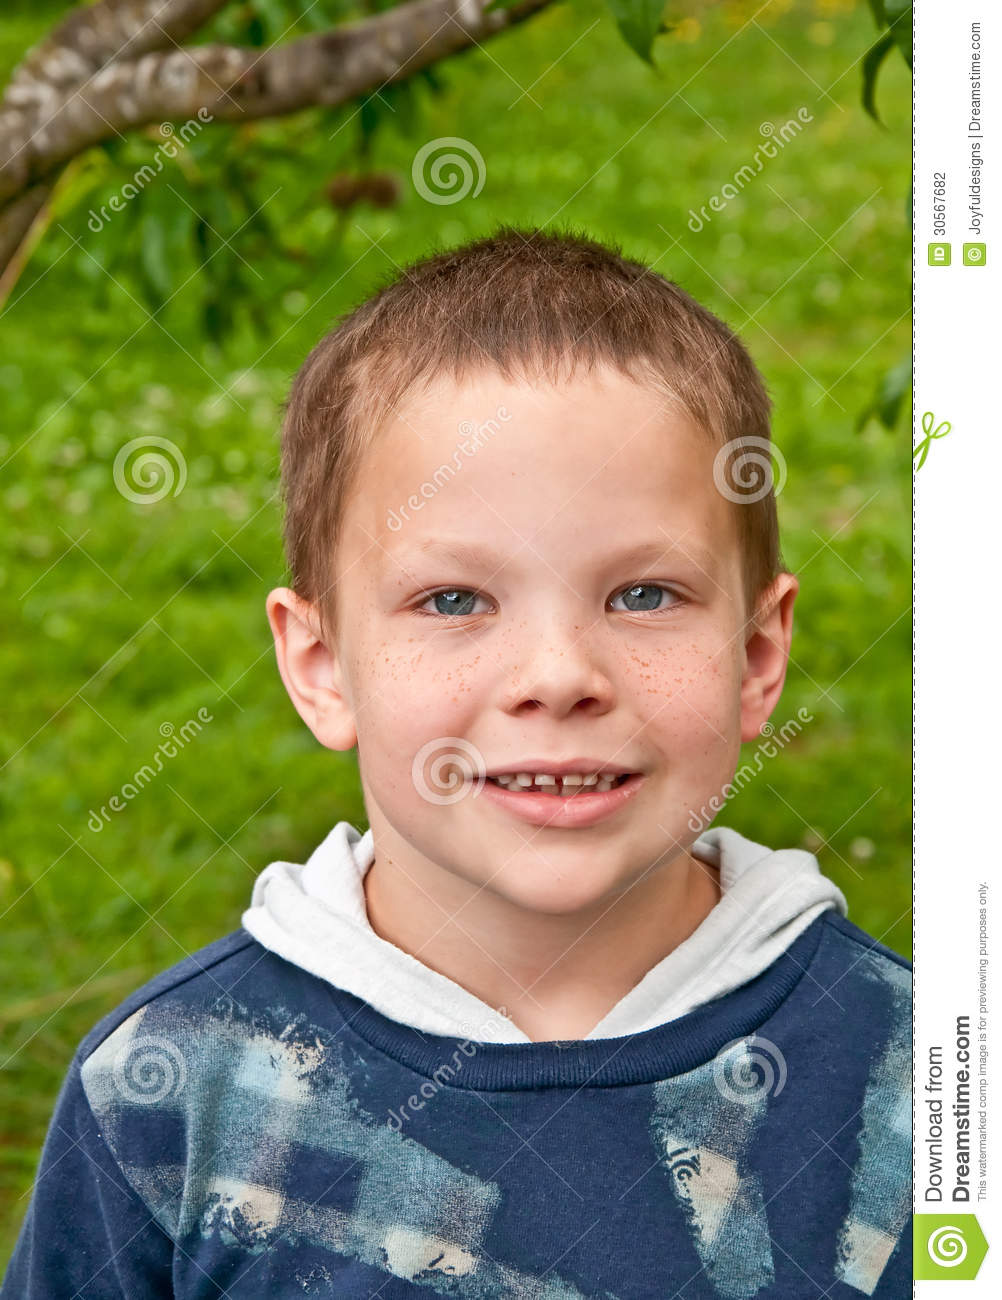 8 Year Boy Bedroom Design: Cute 8 Year Old Caucasian Boy Smiling Stock Photography